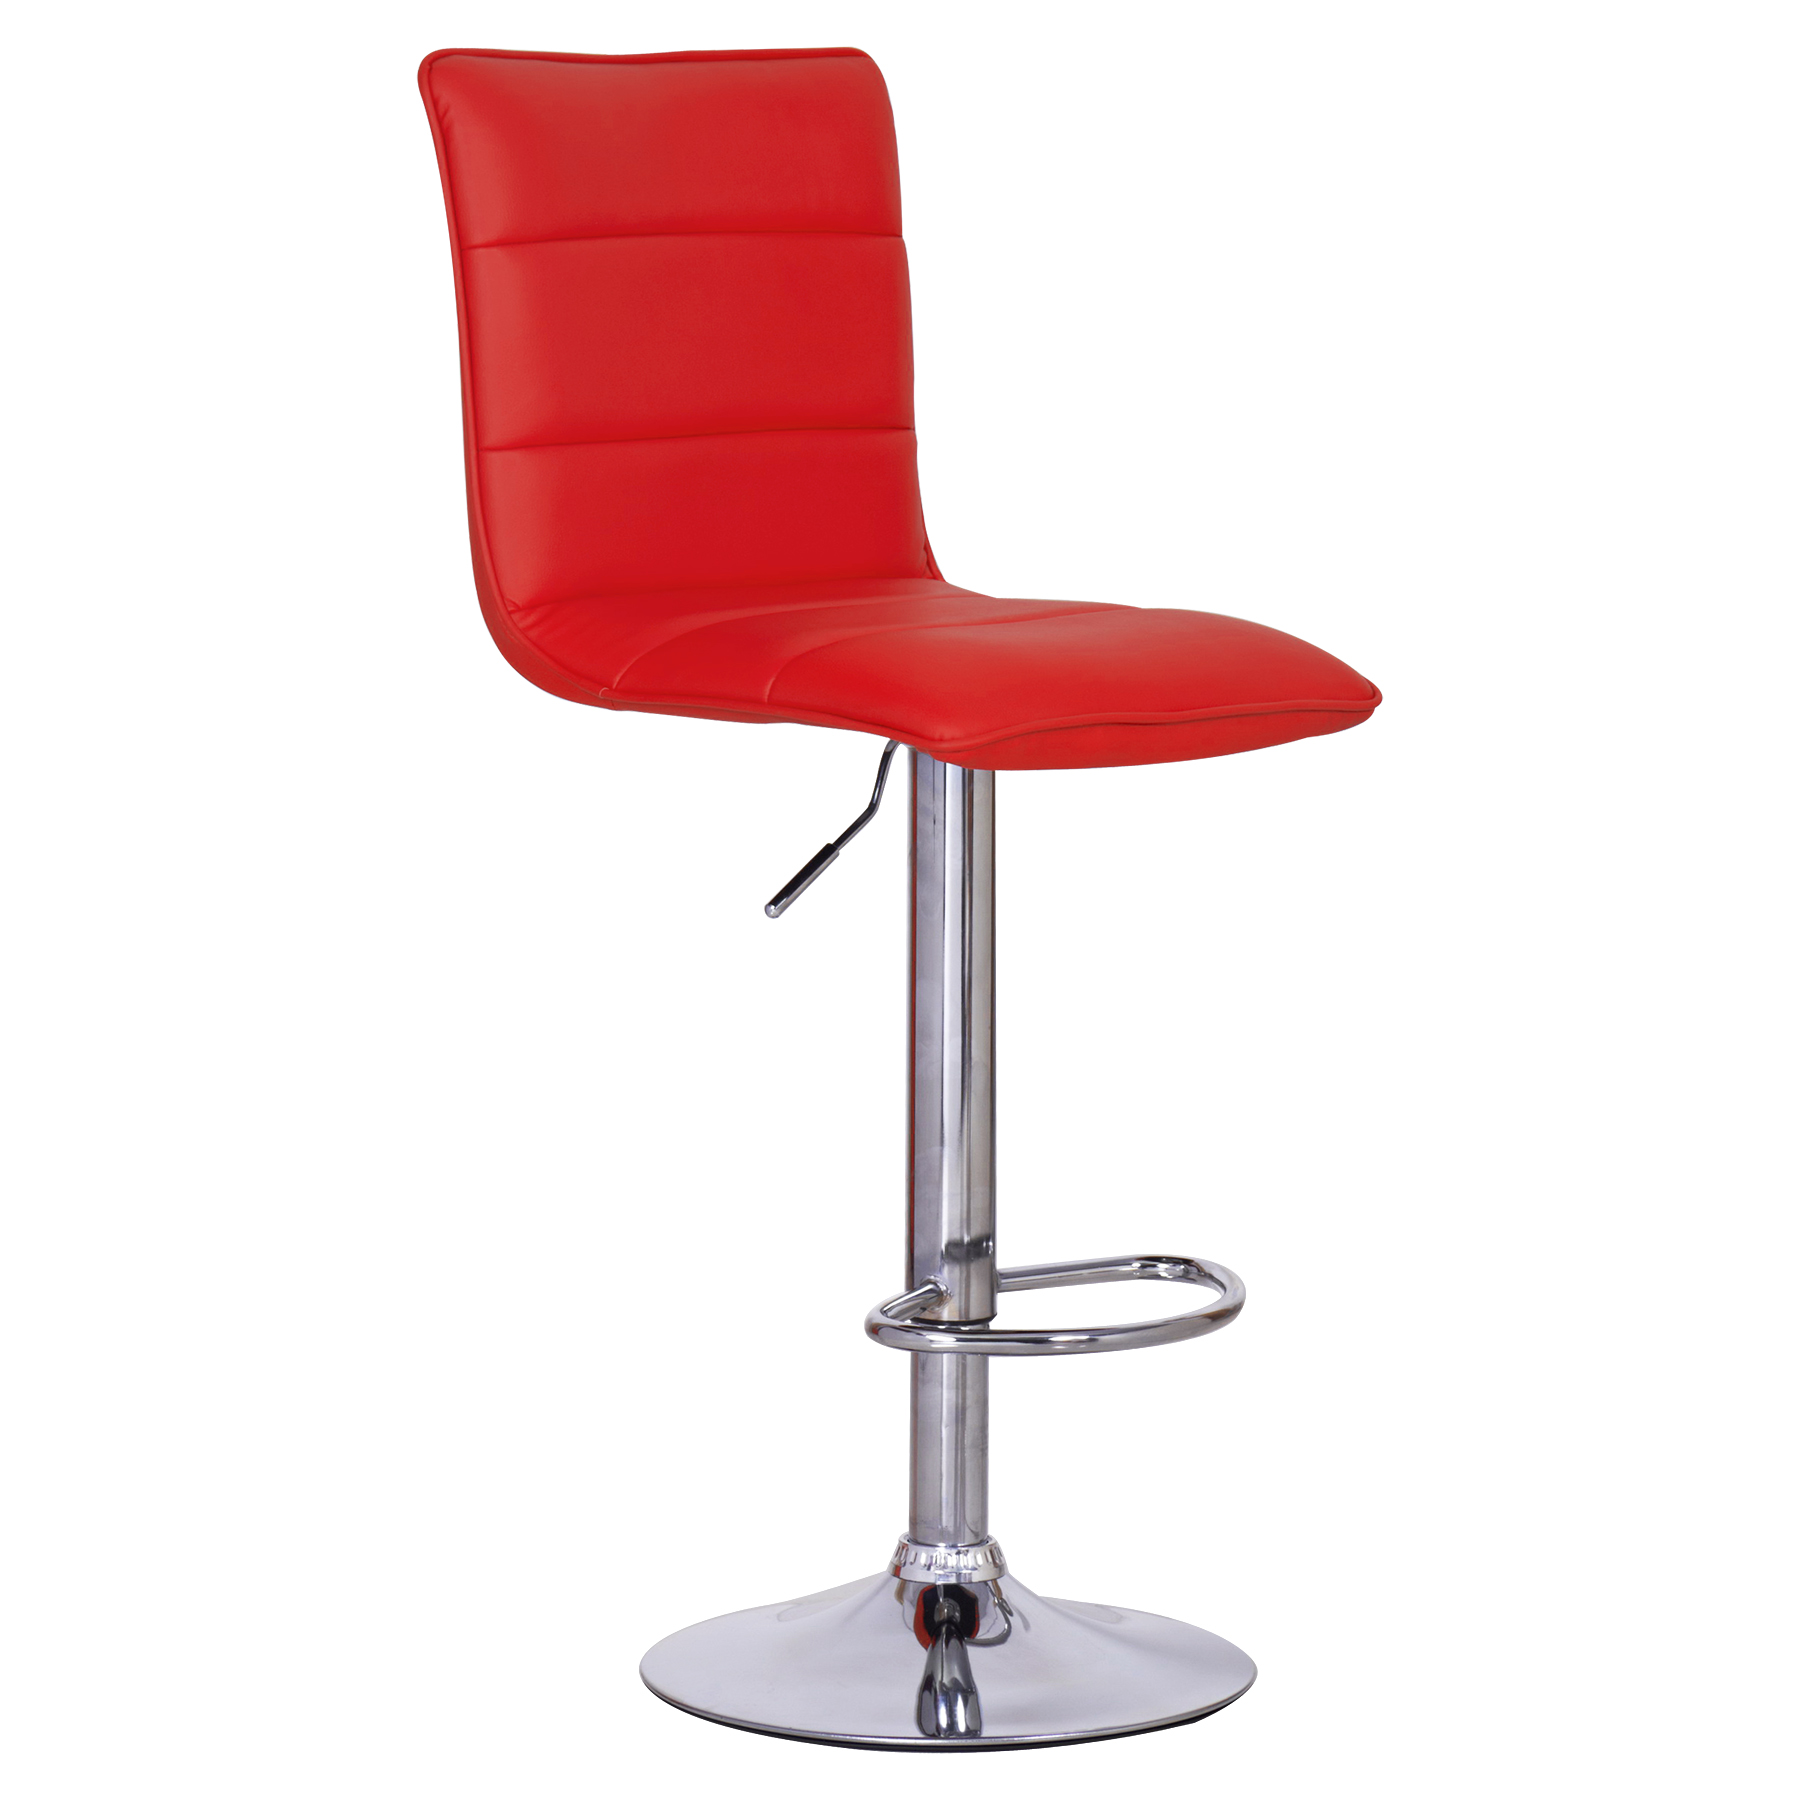 Faux Leather Bar Stools Swivel Bar Stool Kitchen Breakfast  : BH15rt 10 from www.ebay.co.uk size 1800 x 1800 jpeg 507kB